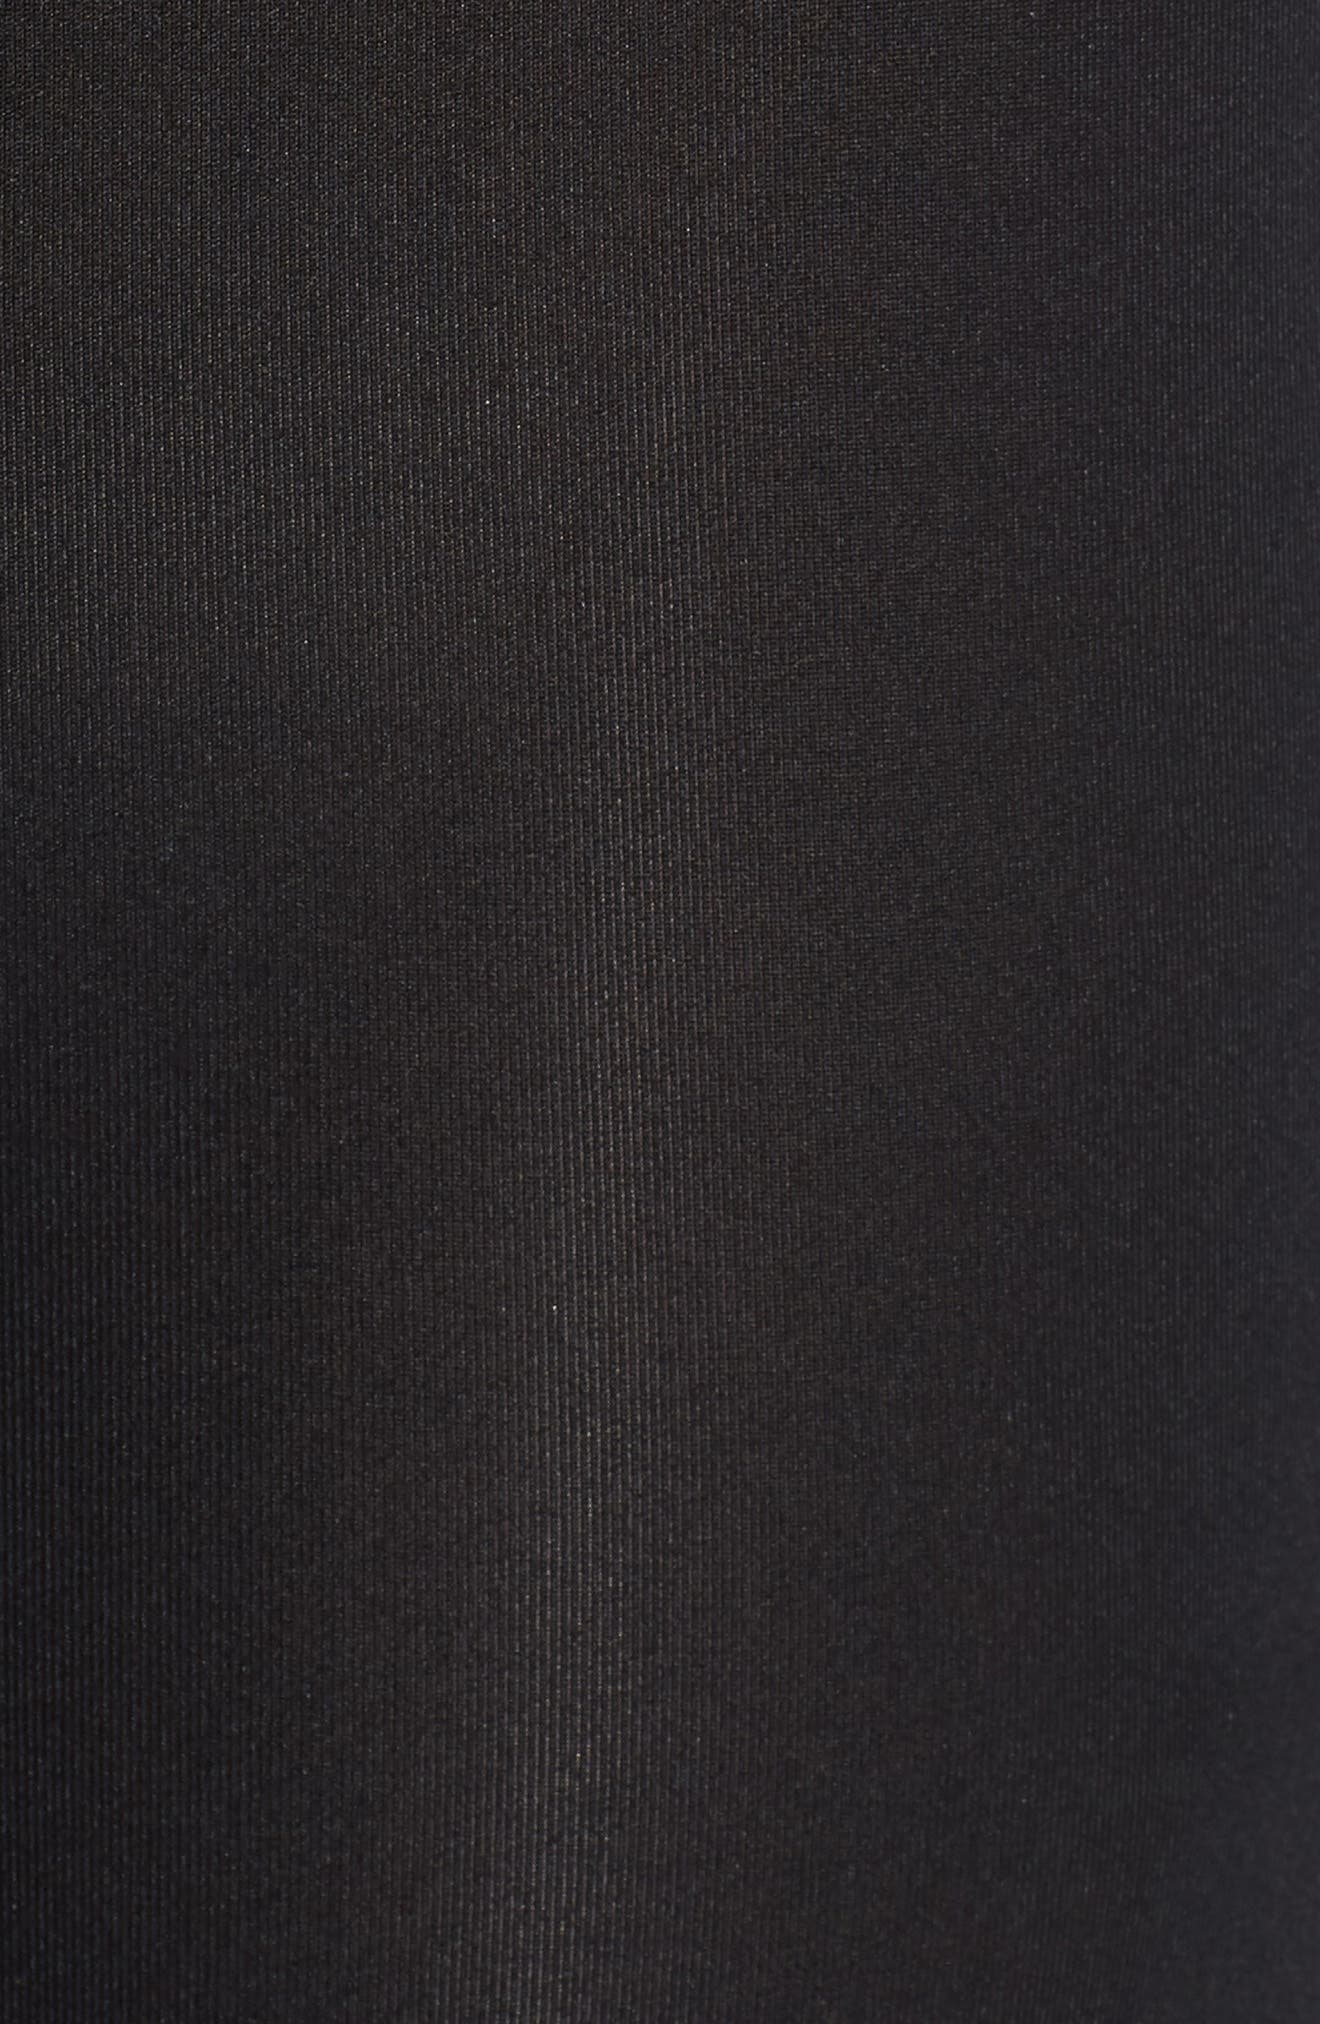 NP Running Tights,                             Alternate thumbnail 5, color,                             010